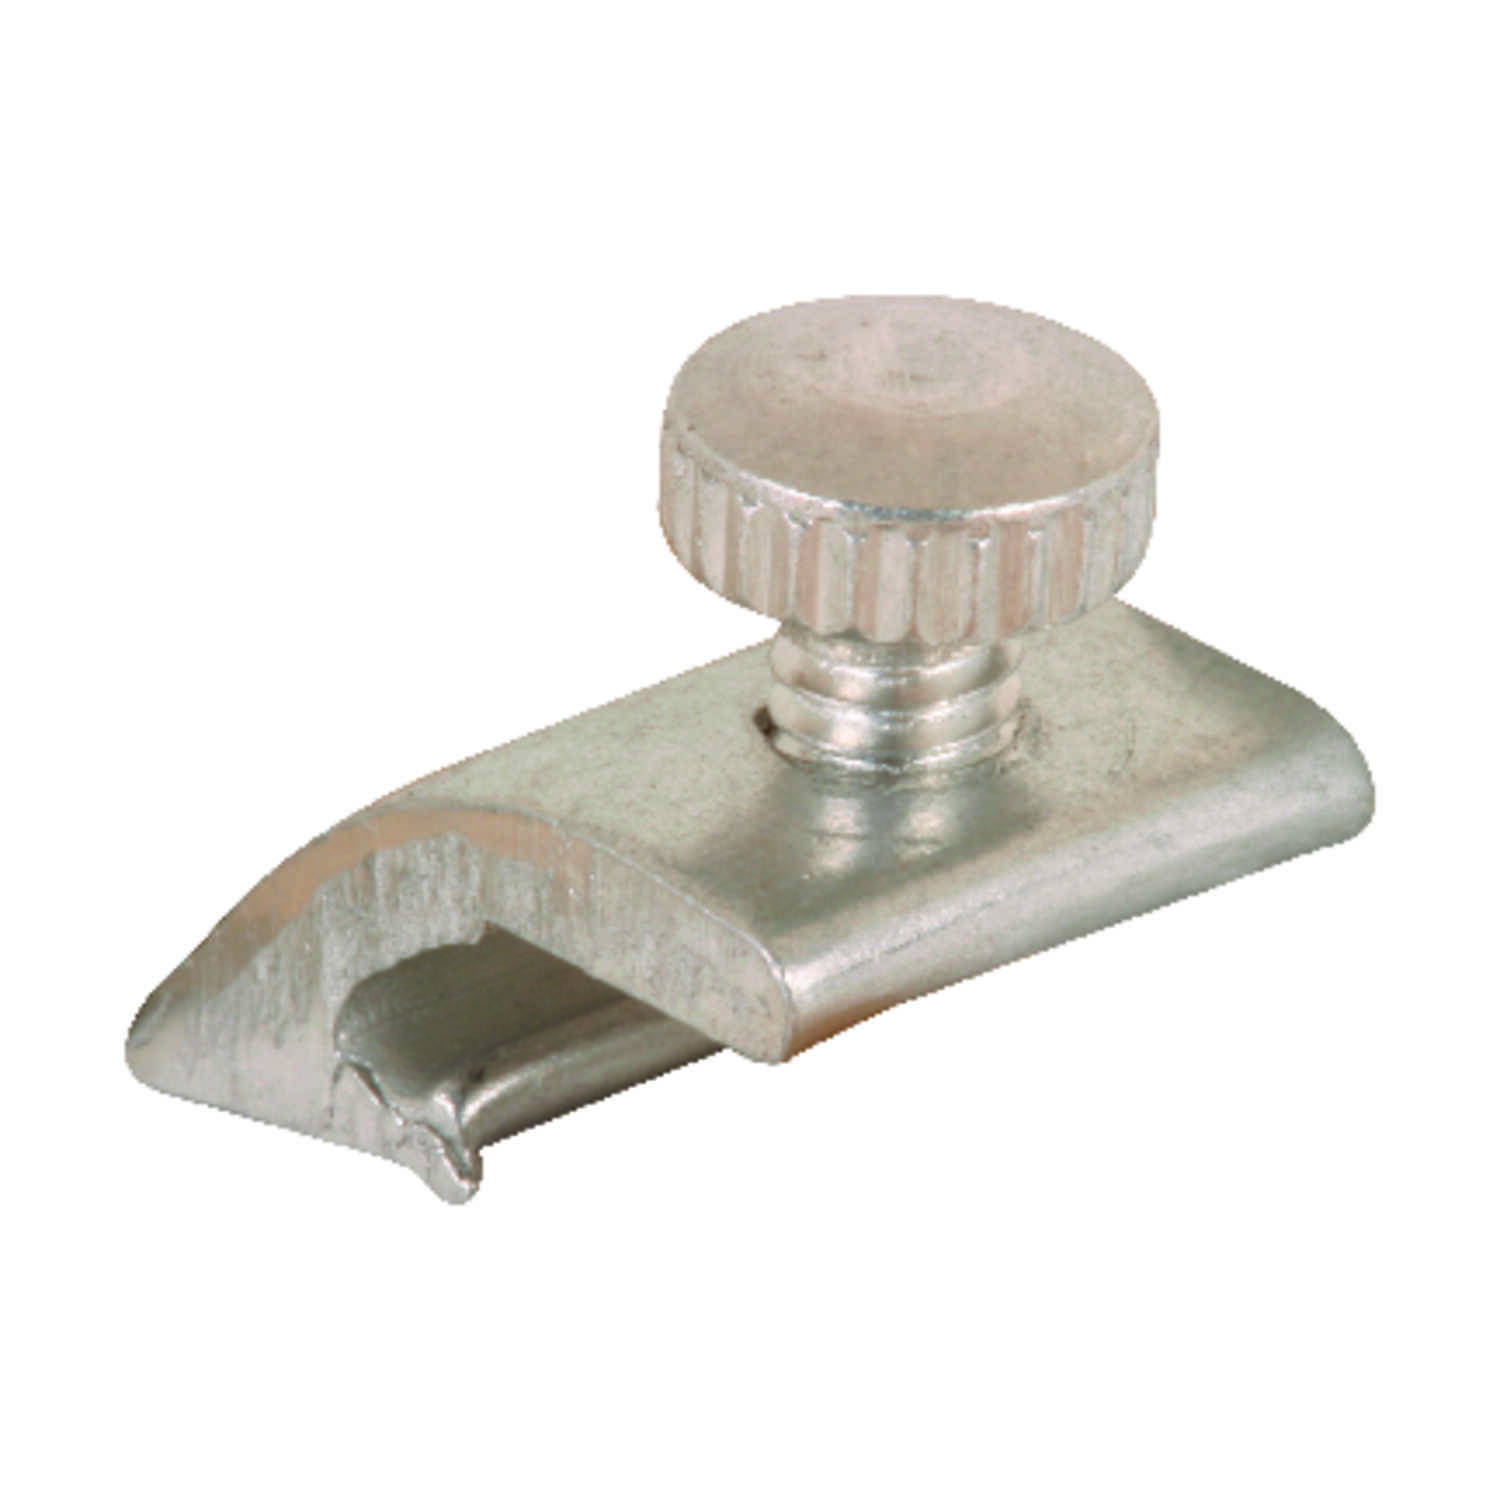 Slide-Co  Mill  Aluminum  Panel Clip  For 1/2 8  Mill